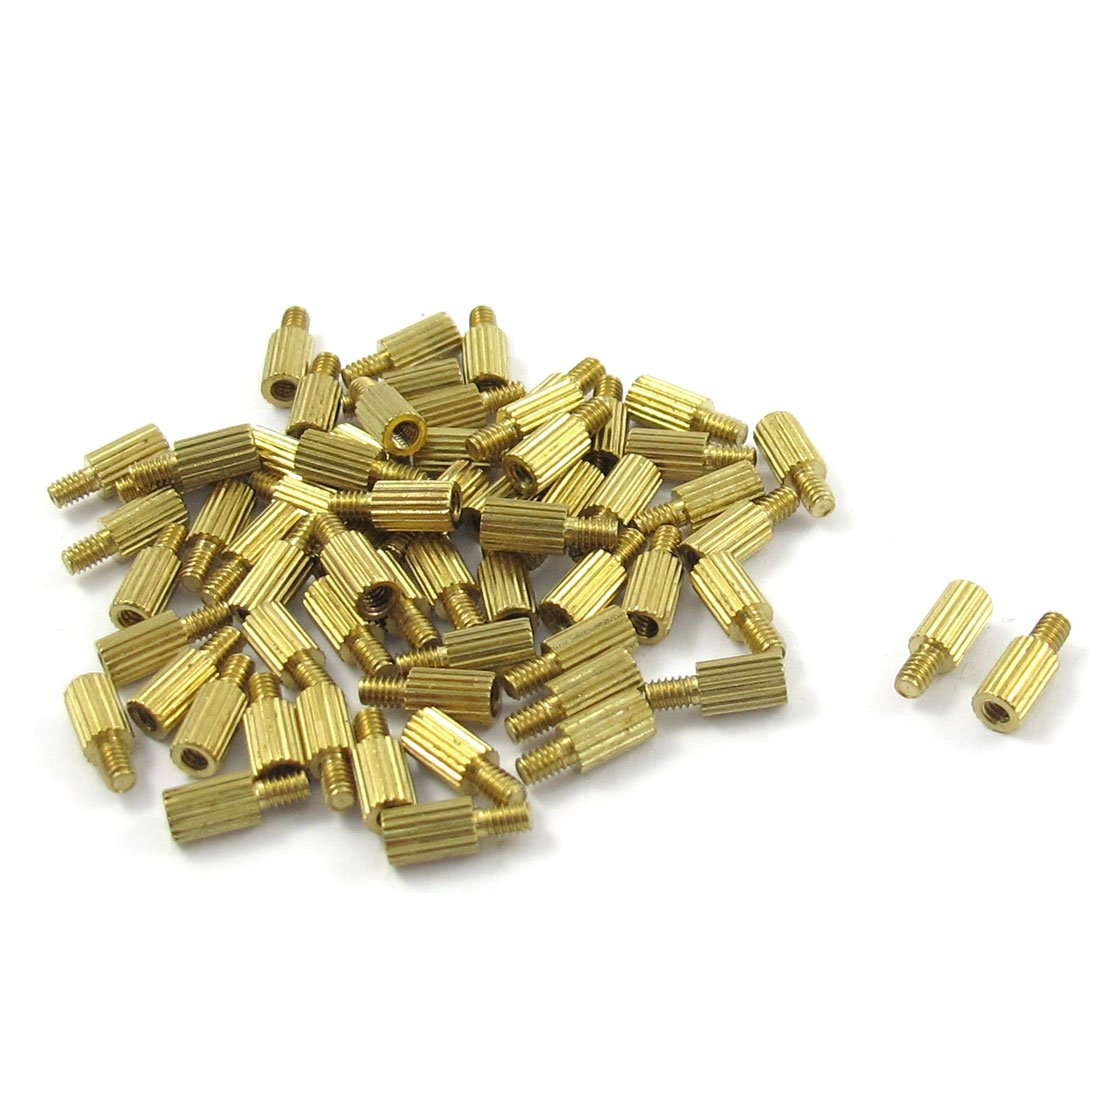 CSS 50 Pcs Male to Female Thread Brass Pillars Standoff Spacer M2x5mmx8mm m4 male m 25 30 35 40 45 50 55 60 mm x m4 6mm female brass standoff spacer copper hexagonal stud spacer hollow pillars